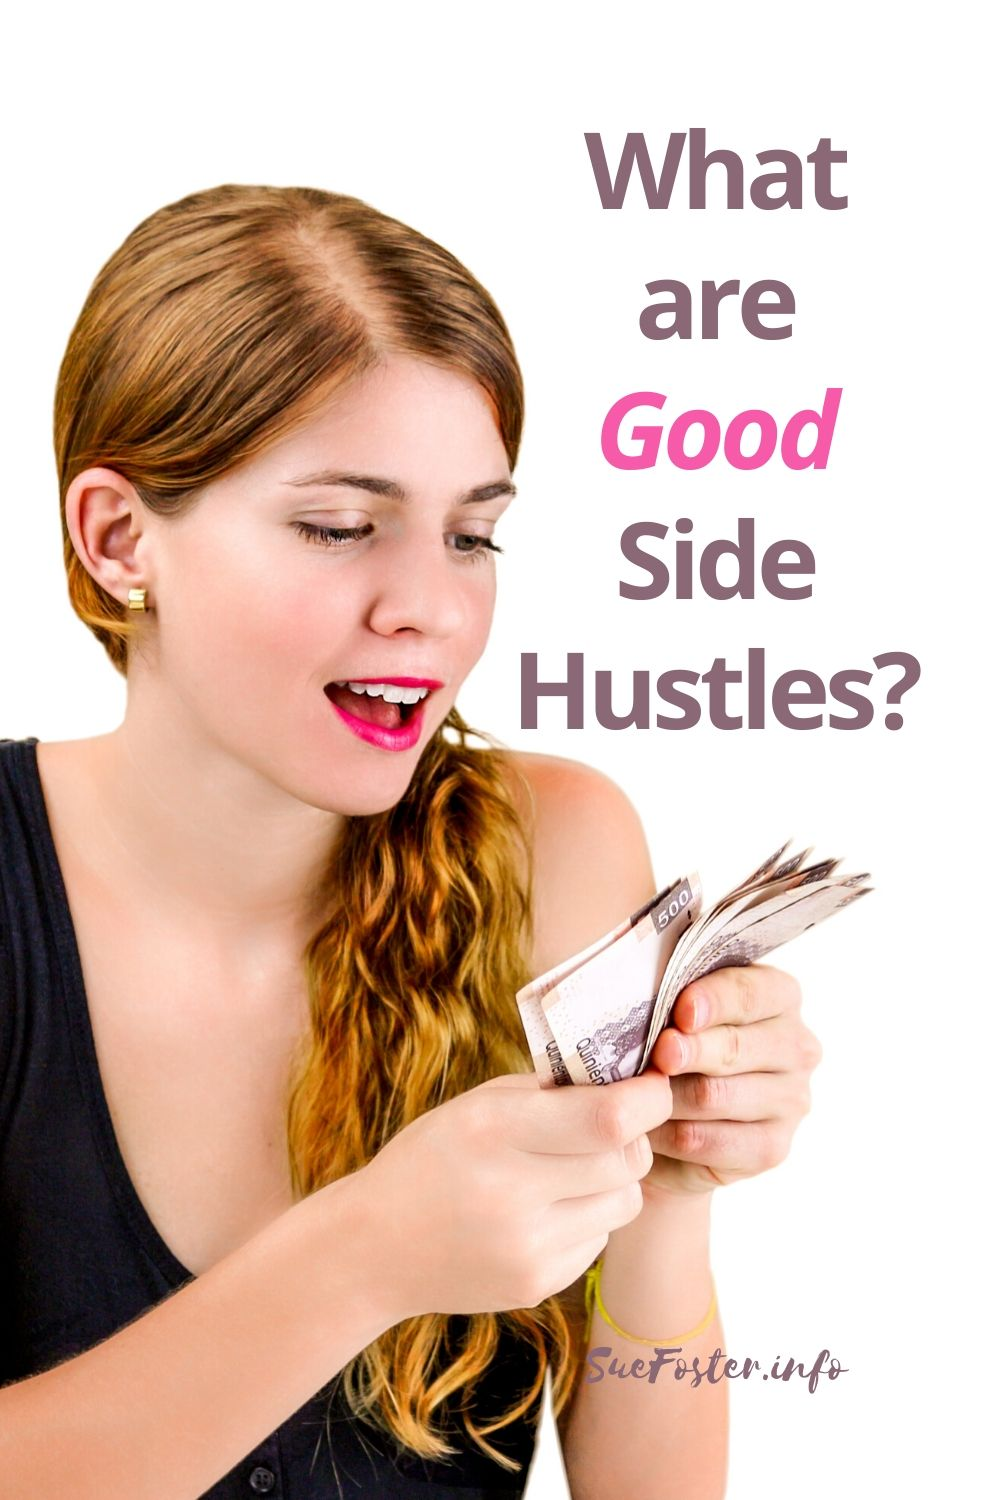 Different methods to side hustle those extra pounds.